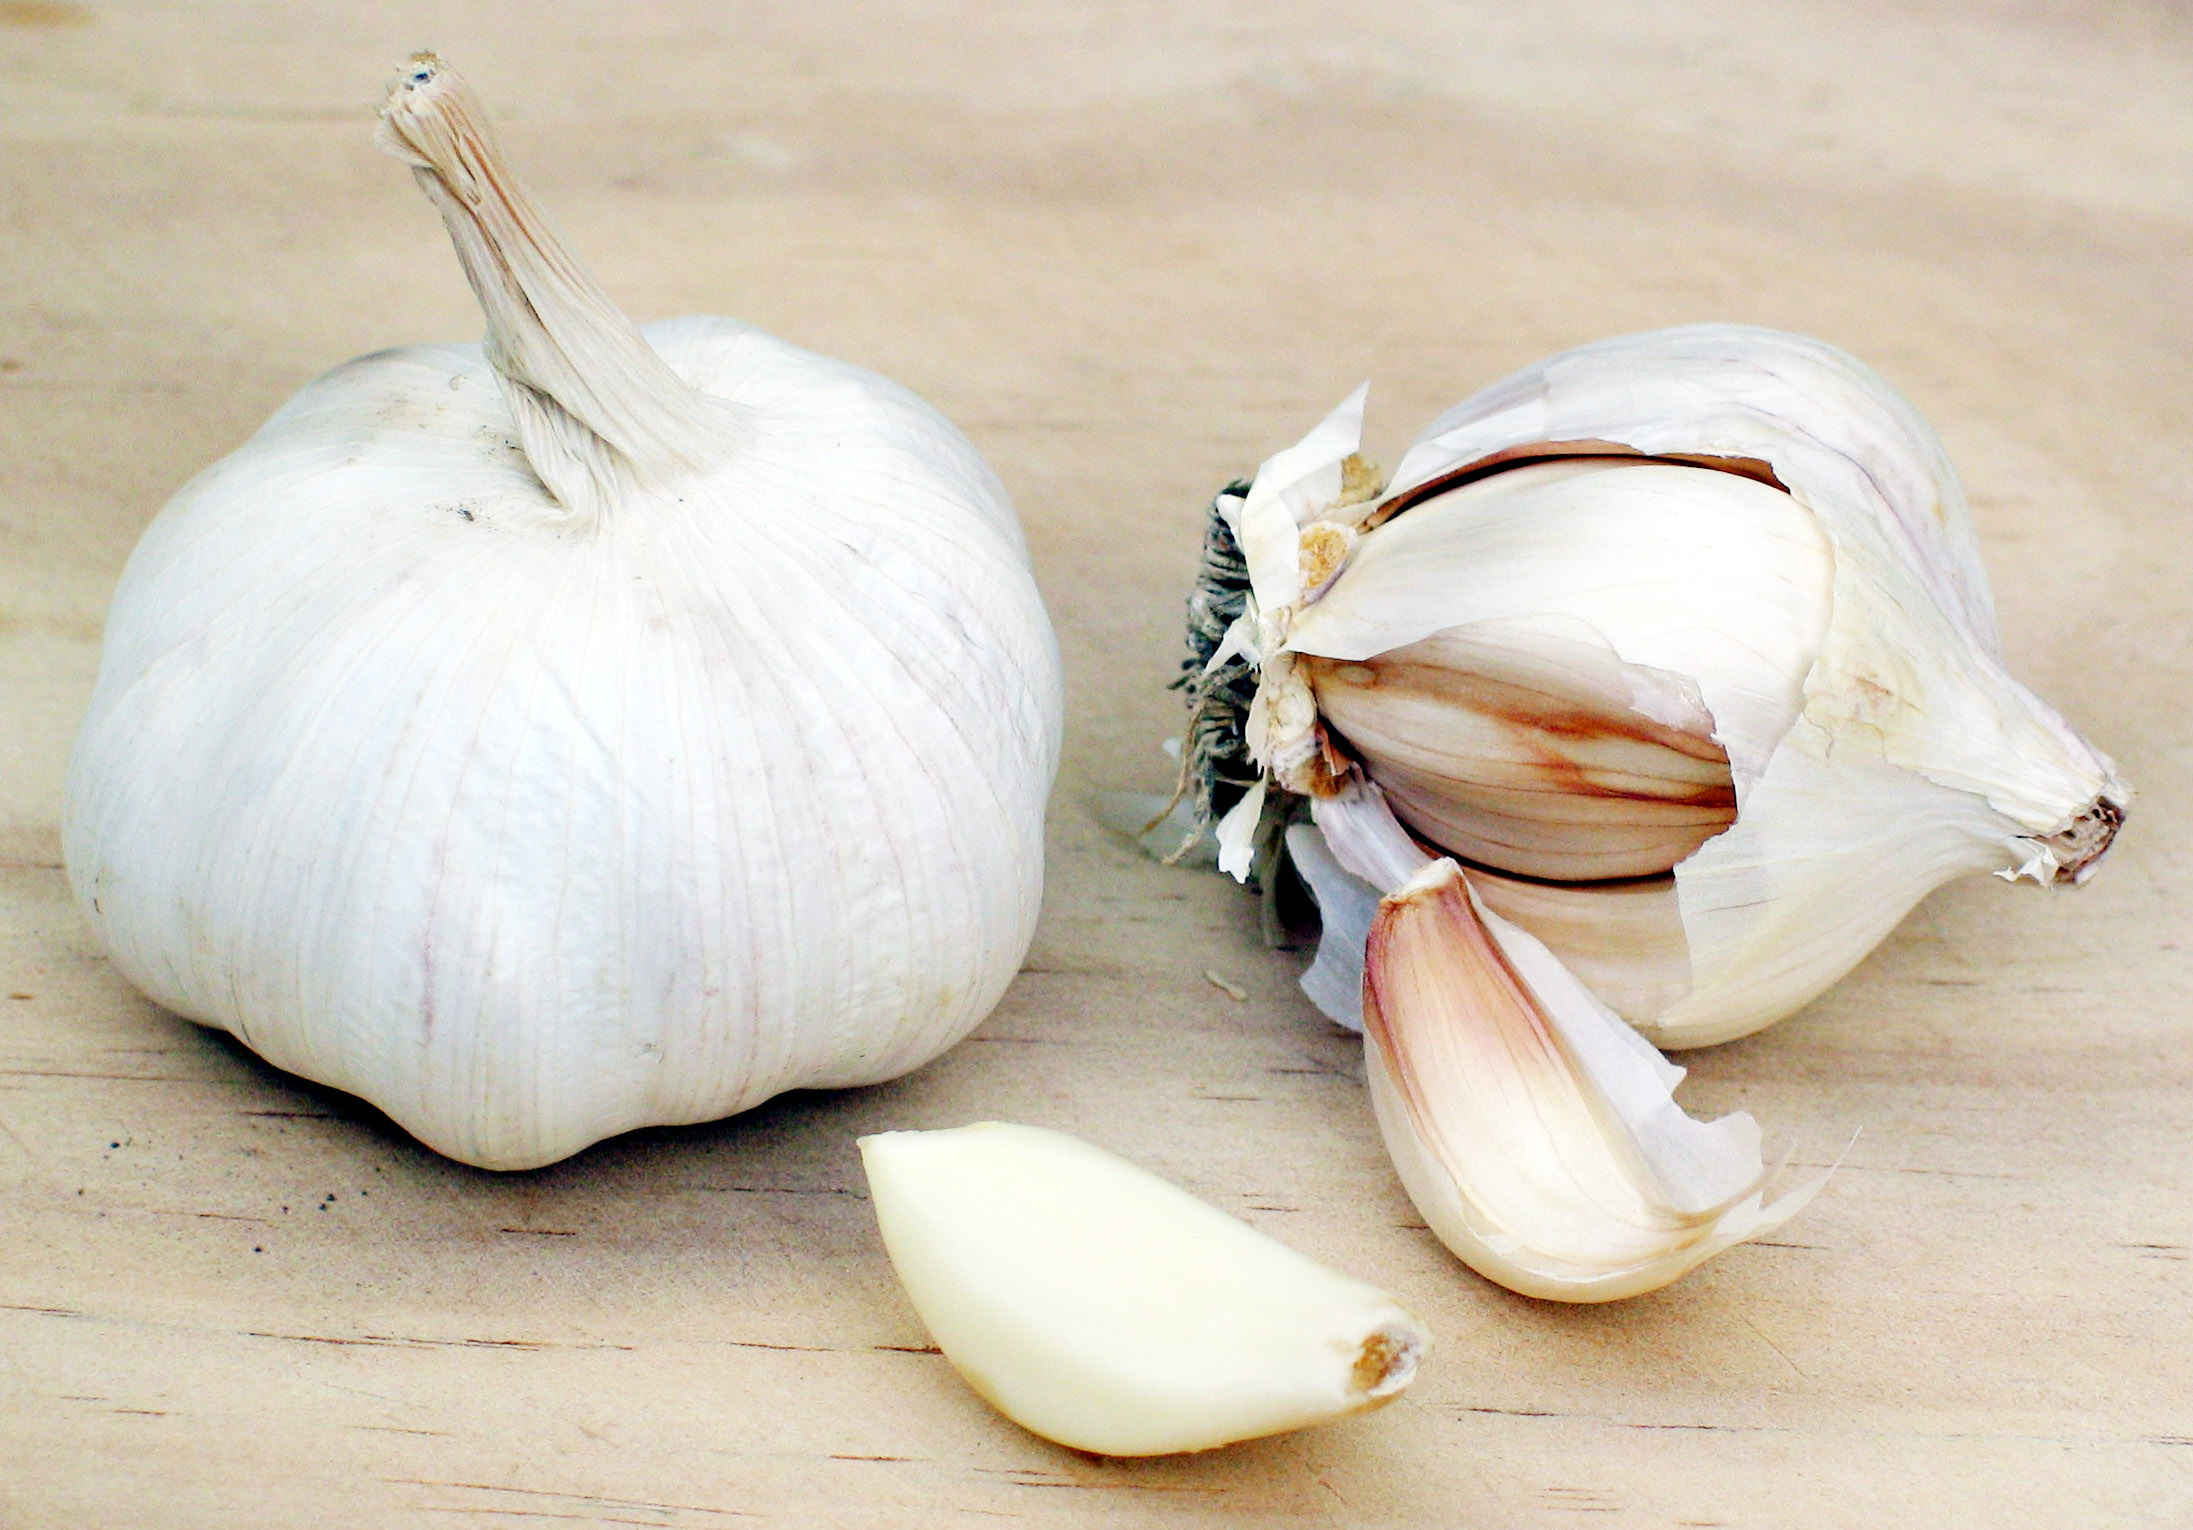 File:Garlic.jpg - Wikimedia Commons